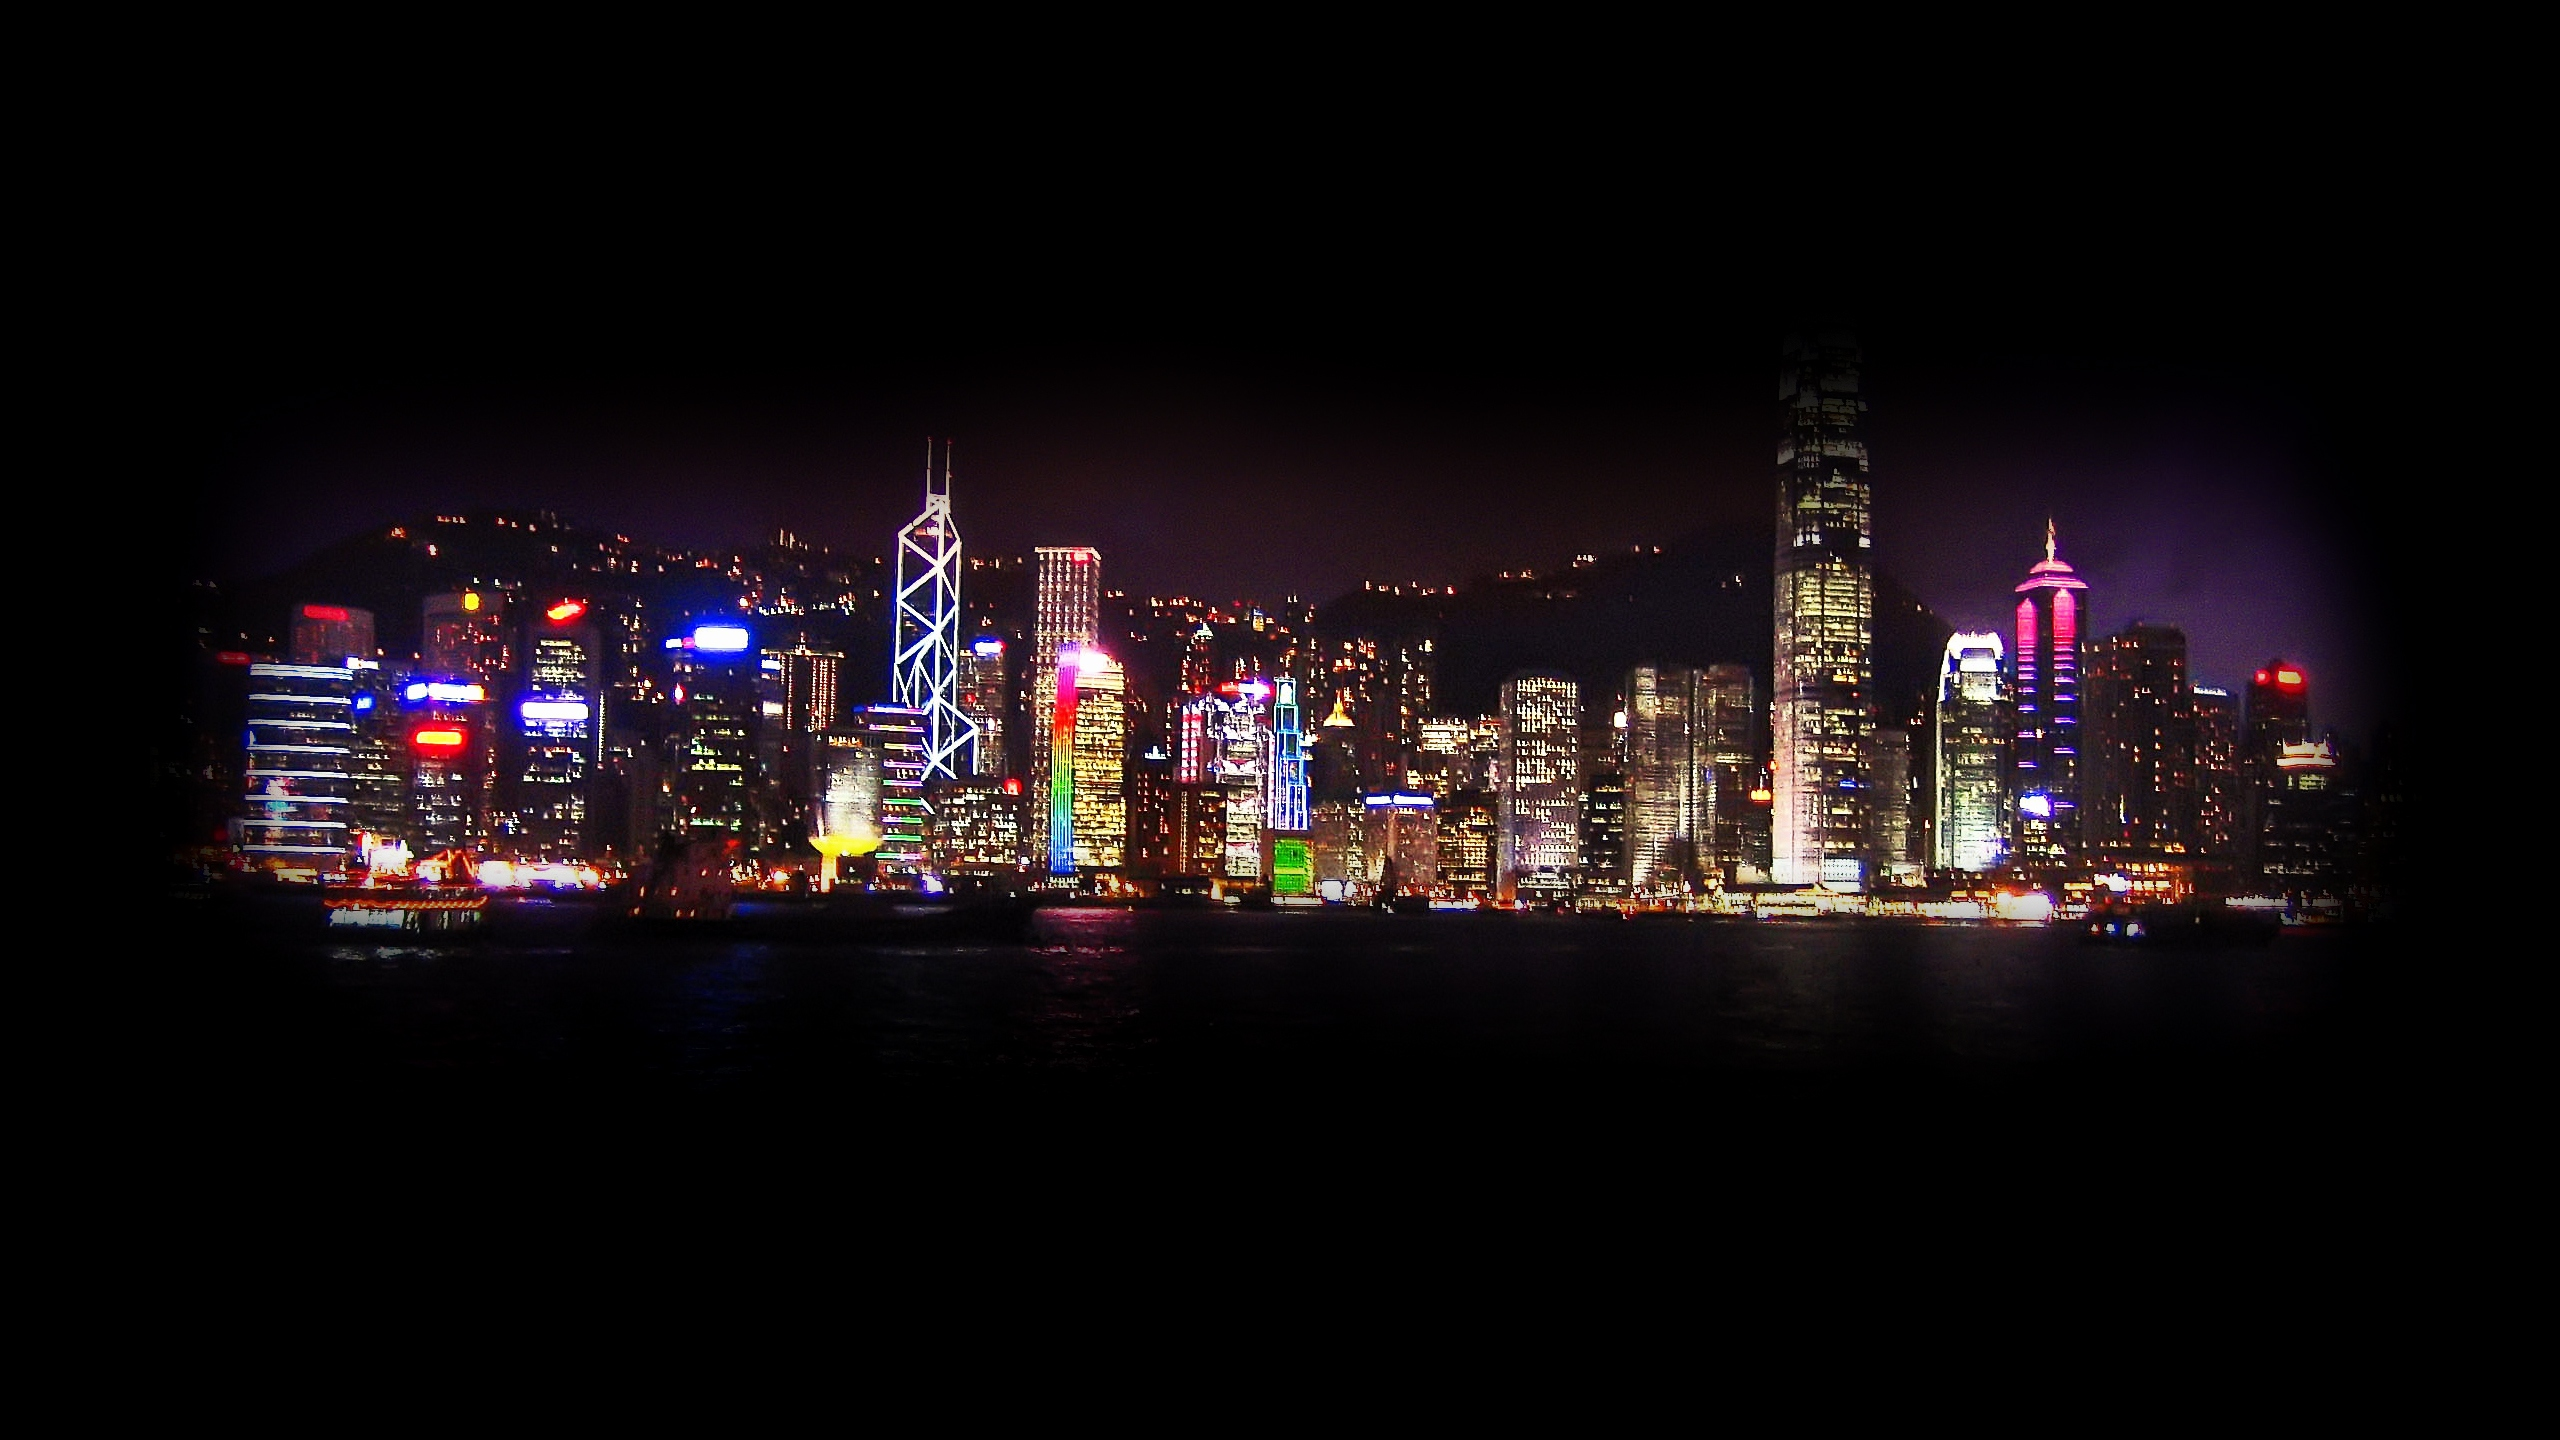 12 Best Of Cool Backgrounds For Youtube Channel Art Victoria Harbour 2560x1440 Wallpaper Teahub Io